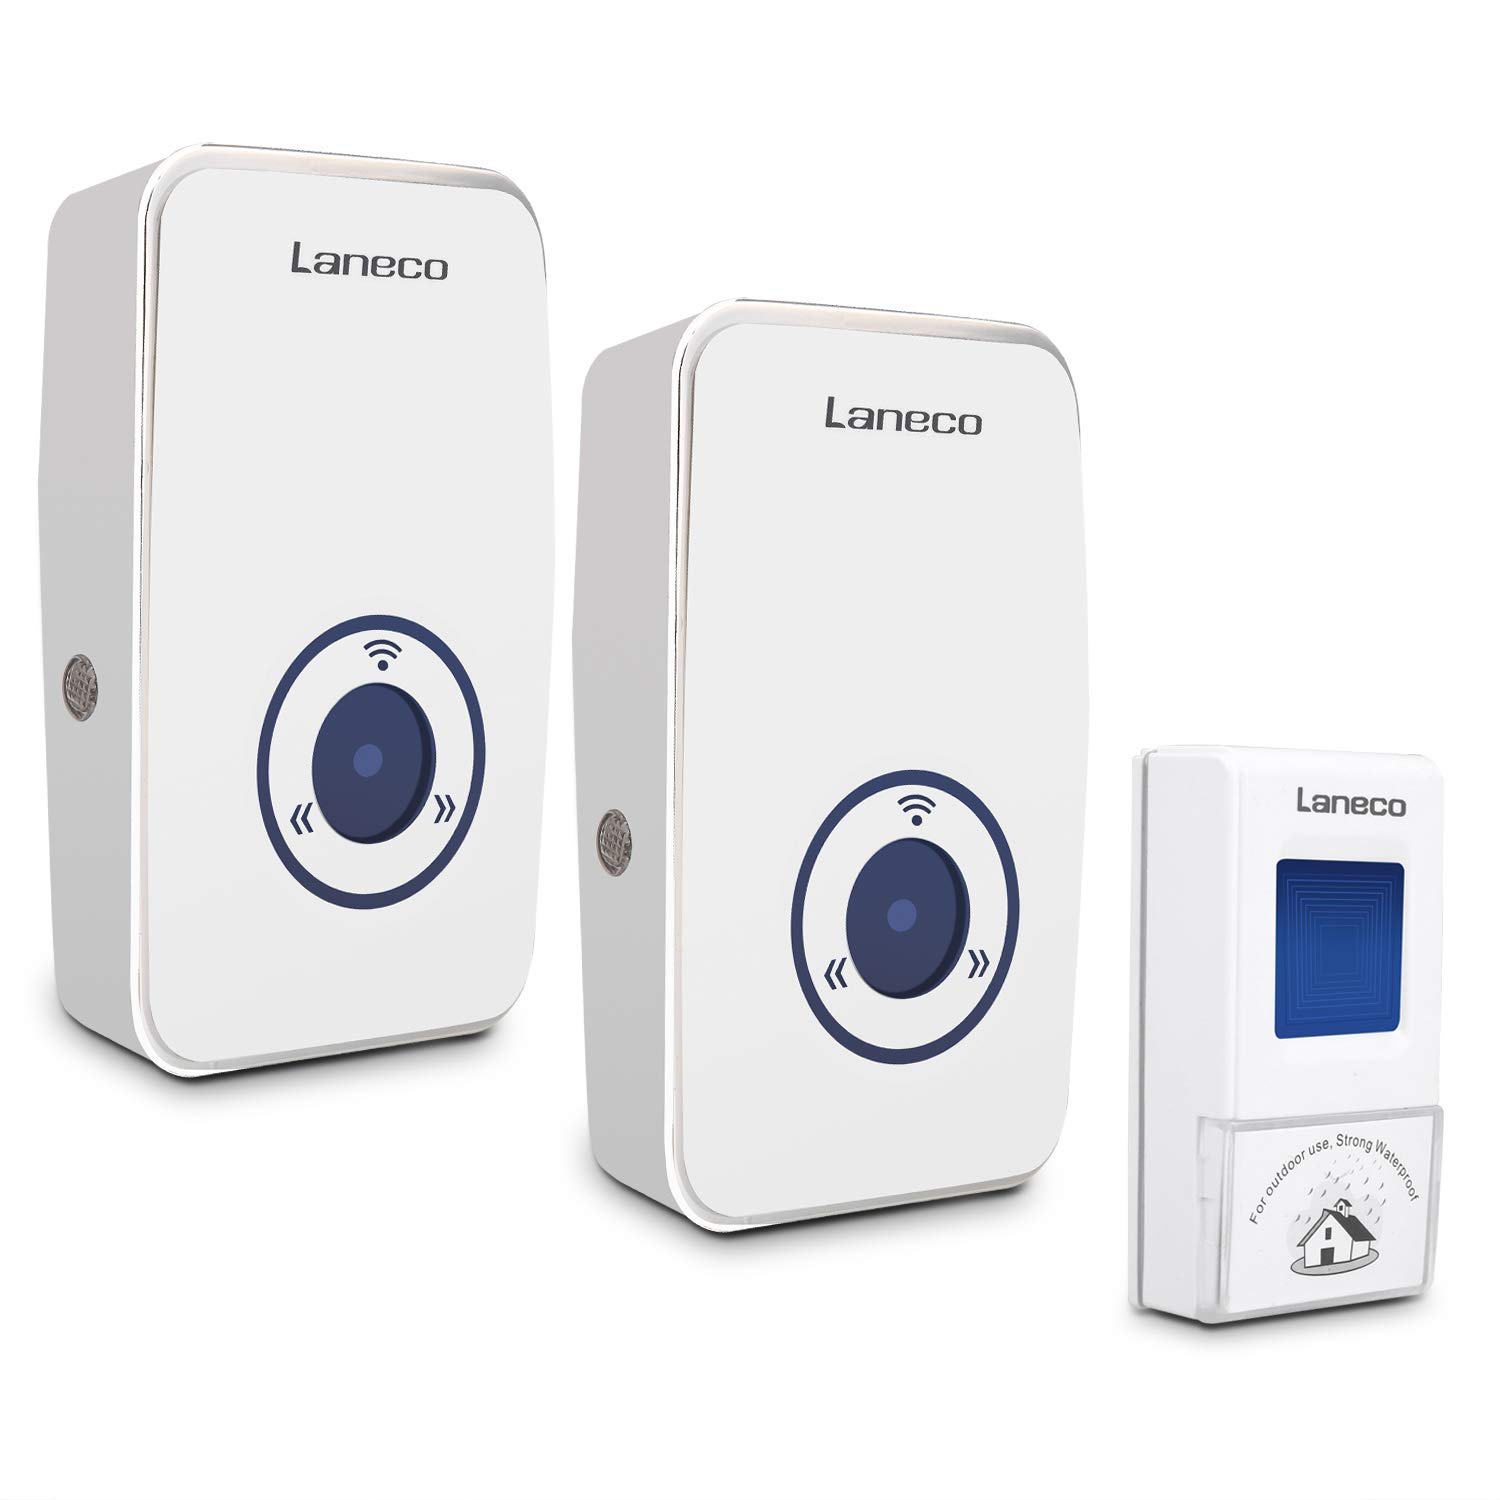 Waterproof Wireless Doorbell Kit for Home, Laneco door bell with 1 Remote Button and 2 Plug-in Receivers Operating up to 656 feet Long Range